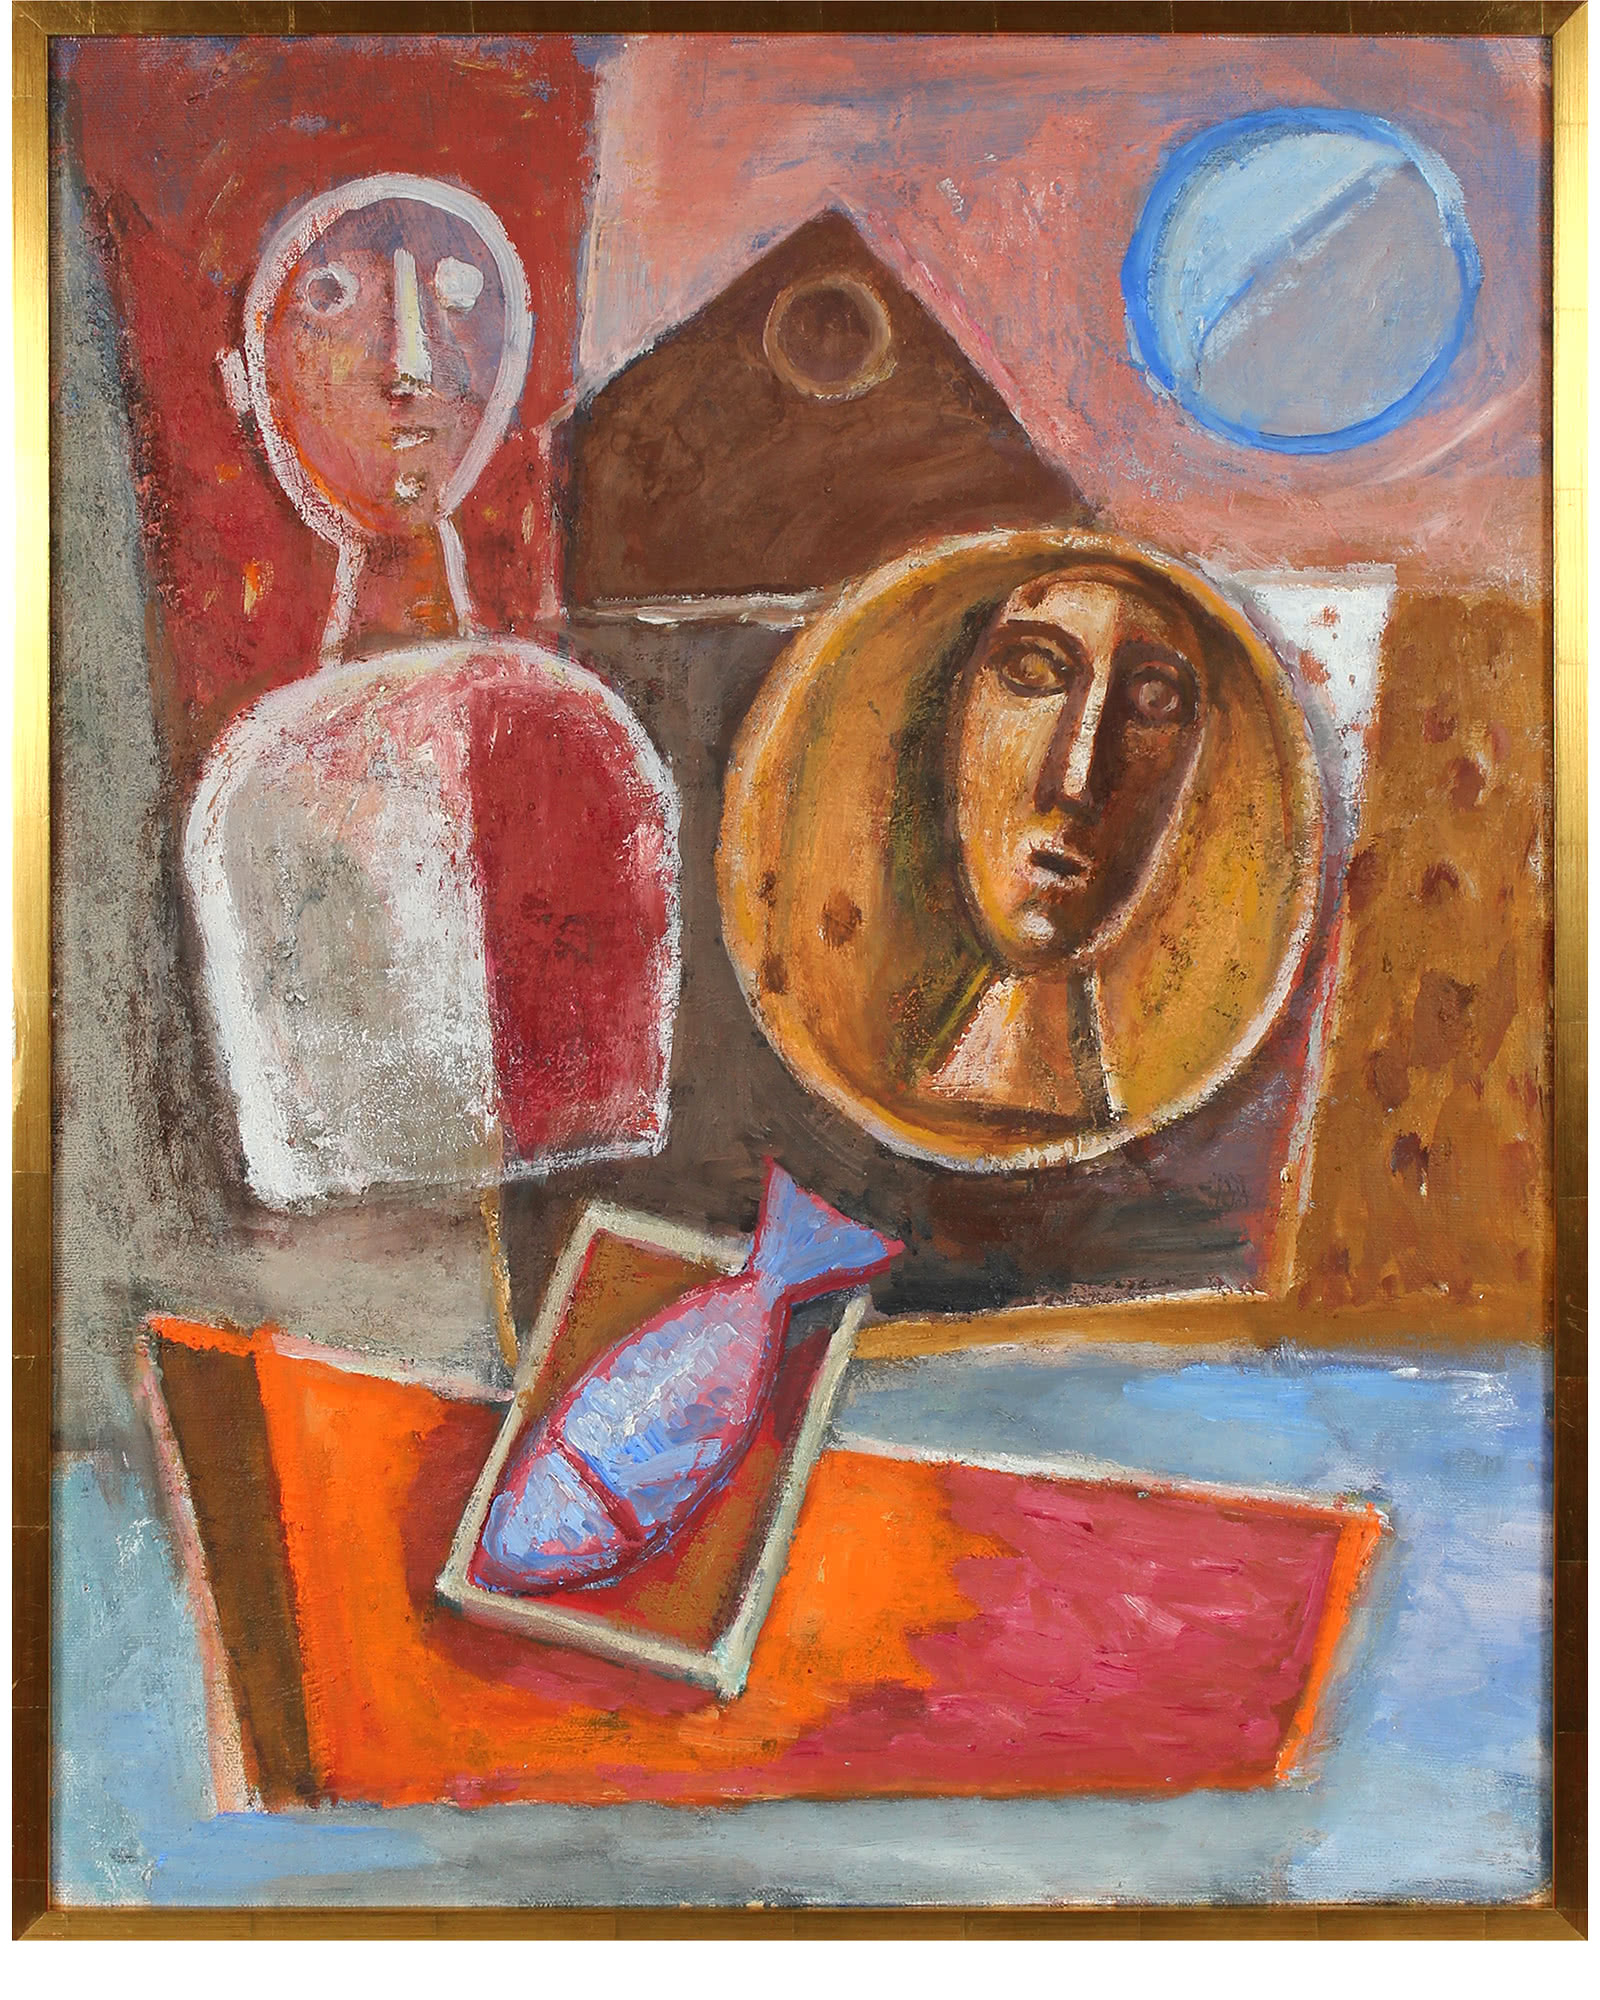 """Faces in Still Life Abstraction"" by Gerald Wasserman"